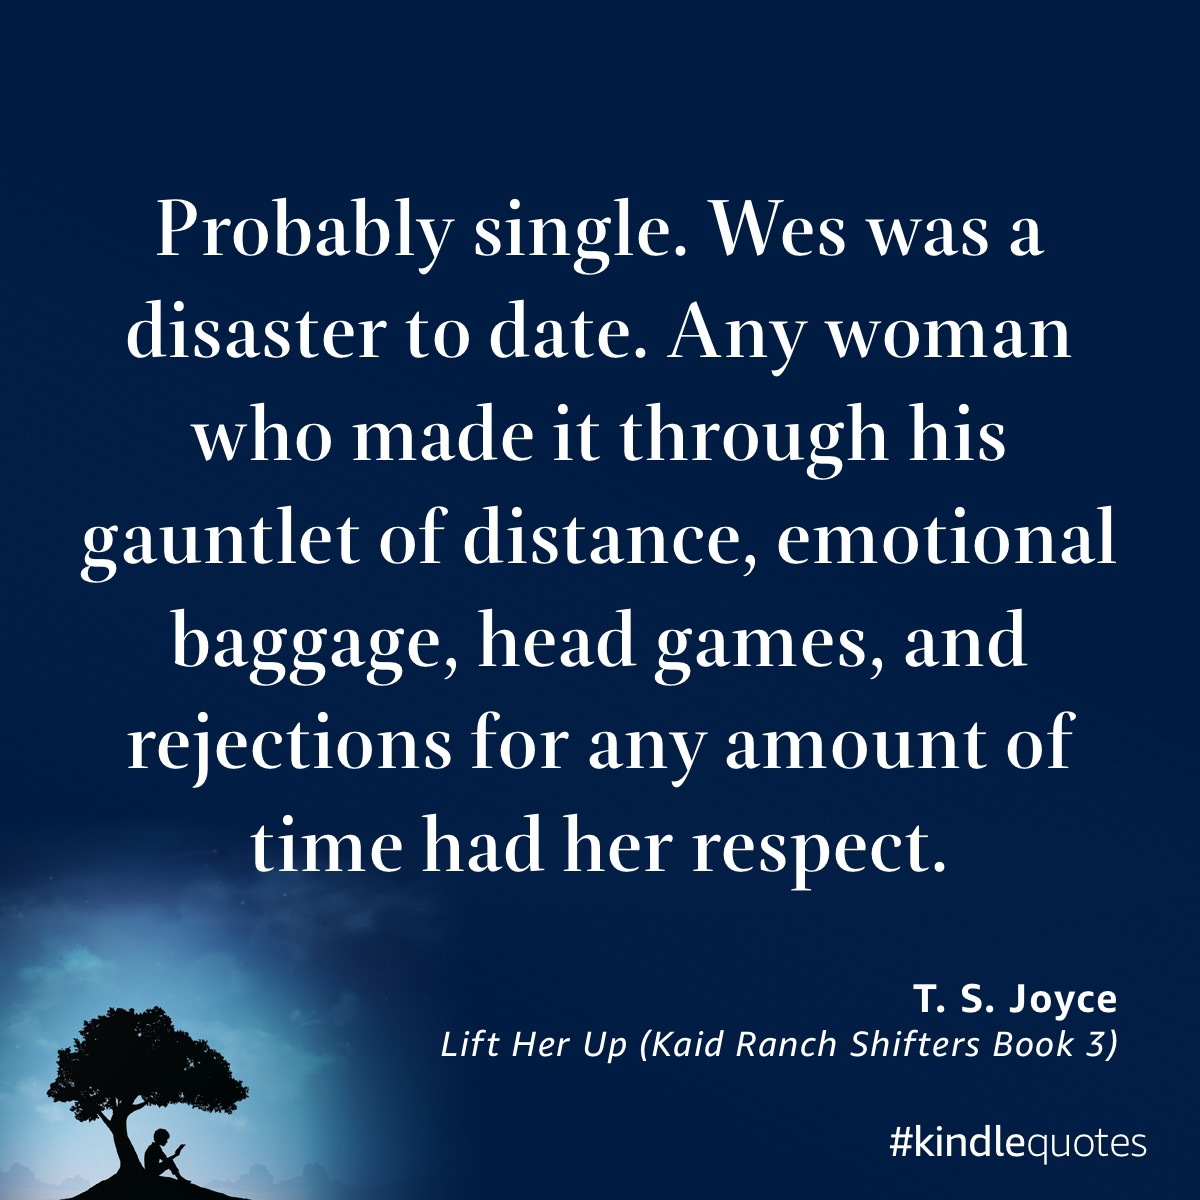 Book quote TS Joyce